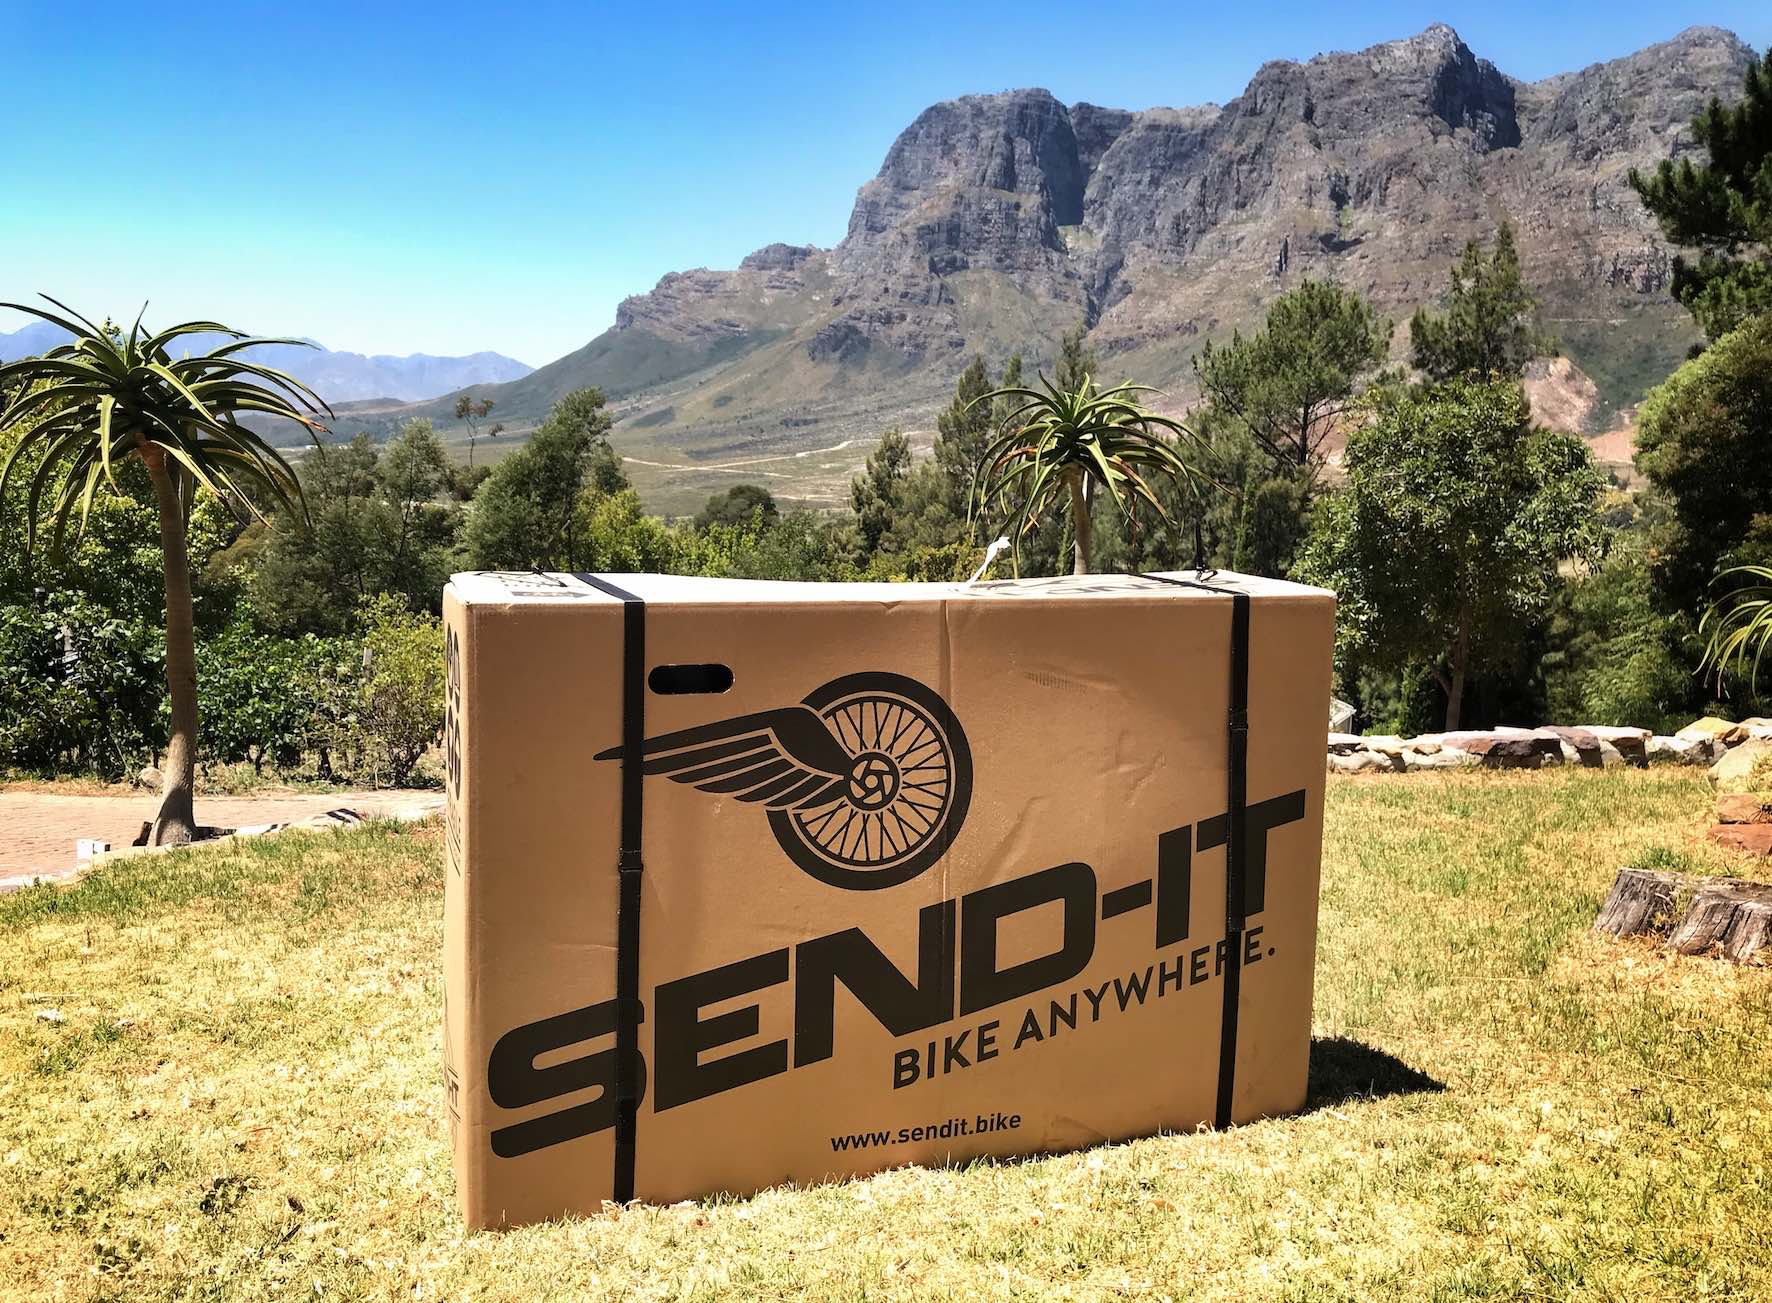 The SEND-IT Bike Box is the perfect companion for Mountain Bike travel